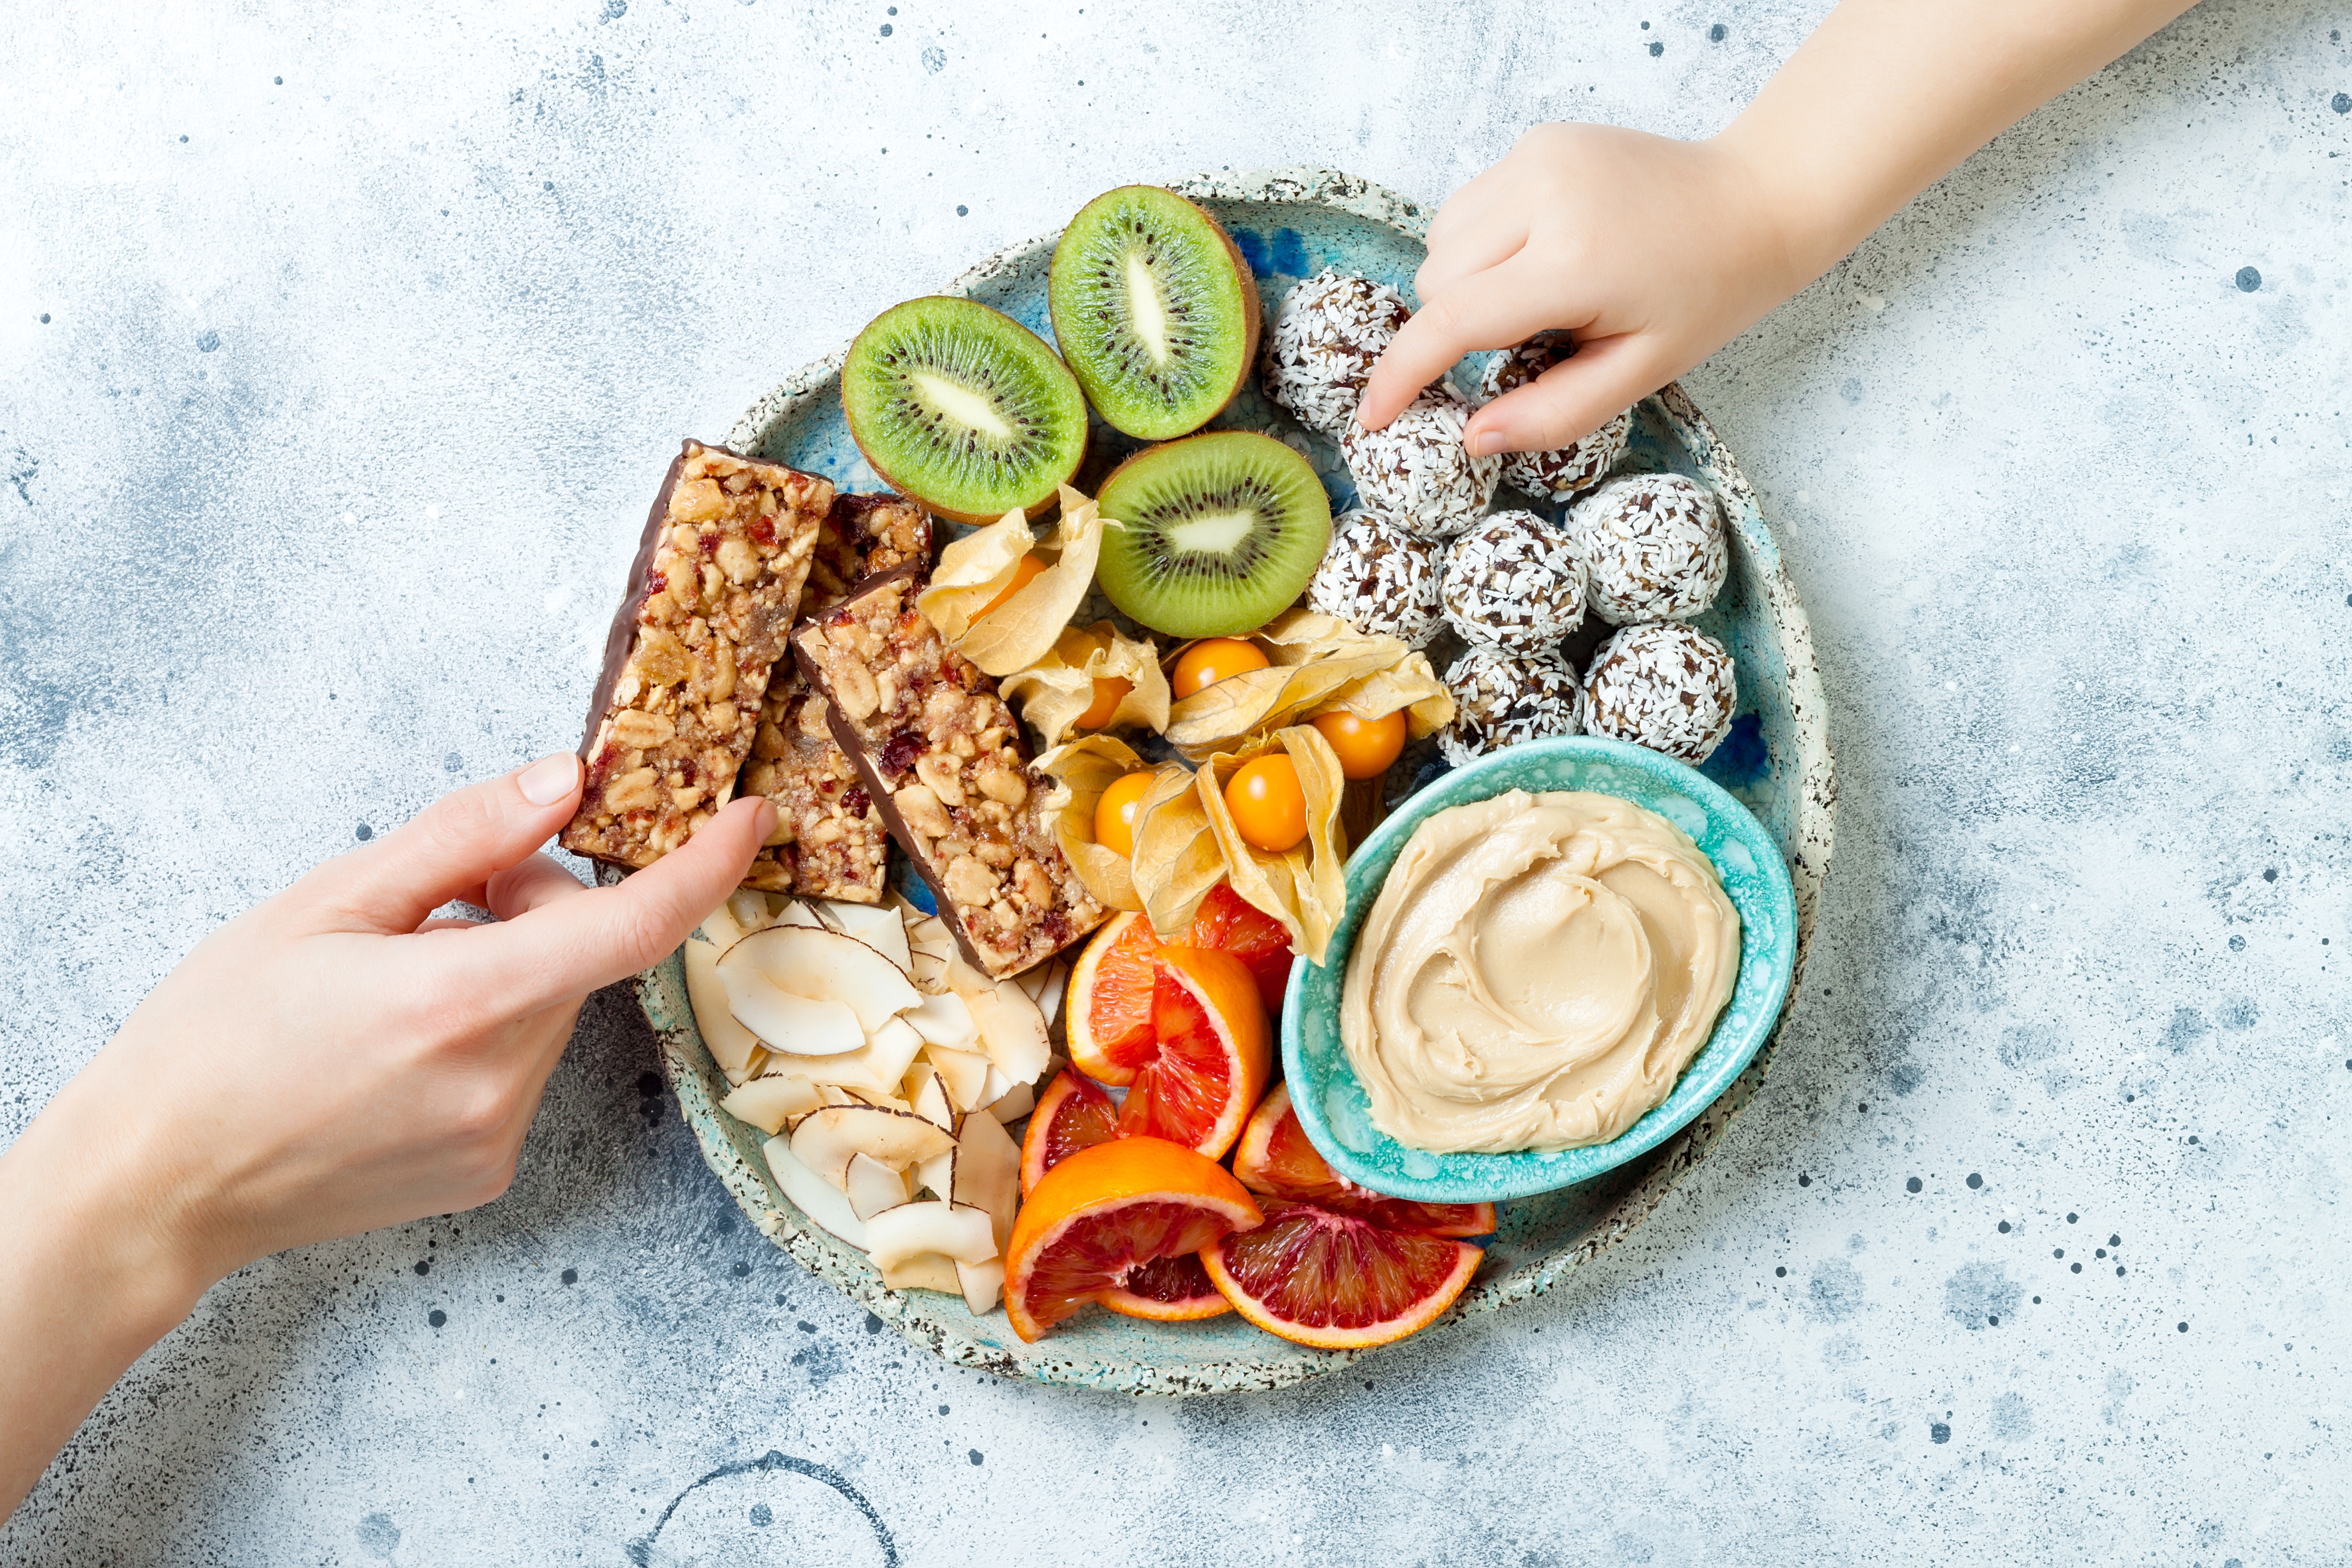 Mother giving healthy vegan dessert snacks to toddler child. Concept of healthy sweets for children. Protein granola bars, homemade raw energy balls, cashew butter, toasted coconut chips, fruits platter